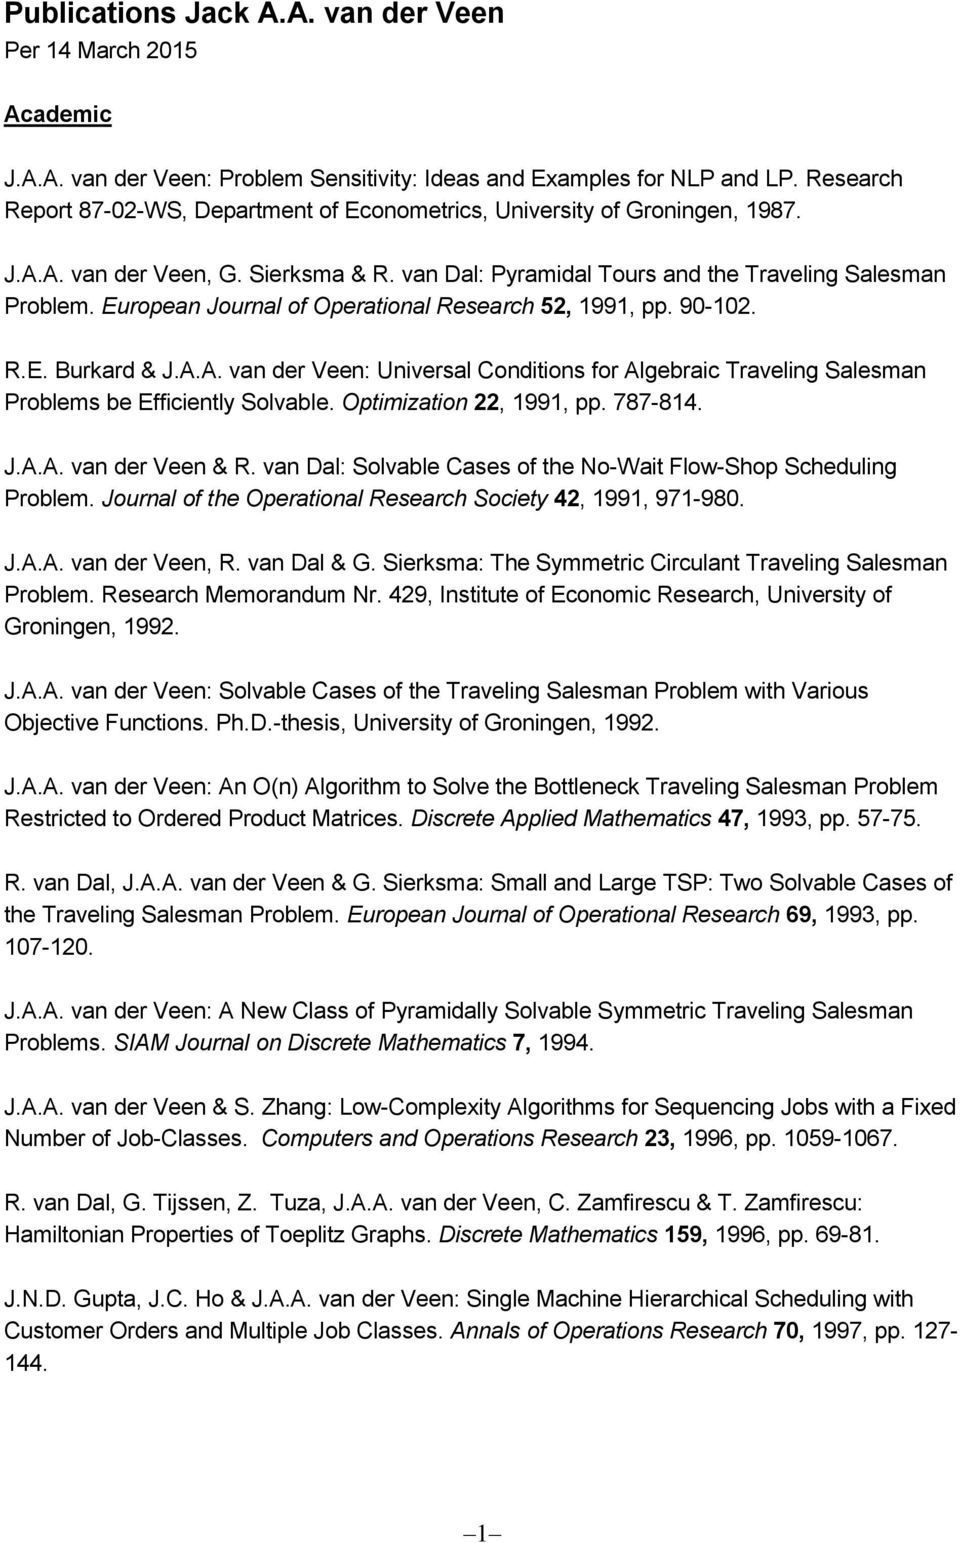 European Journal of Operational Research 52, 1991, pp. 90-102. R.E. Burkard & J.A.A. van der Veen: Universal Conditions for Algebraic Traveling Salesman Problems be Efficiently Solvable.